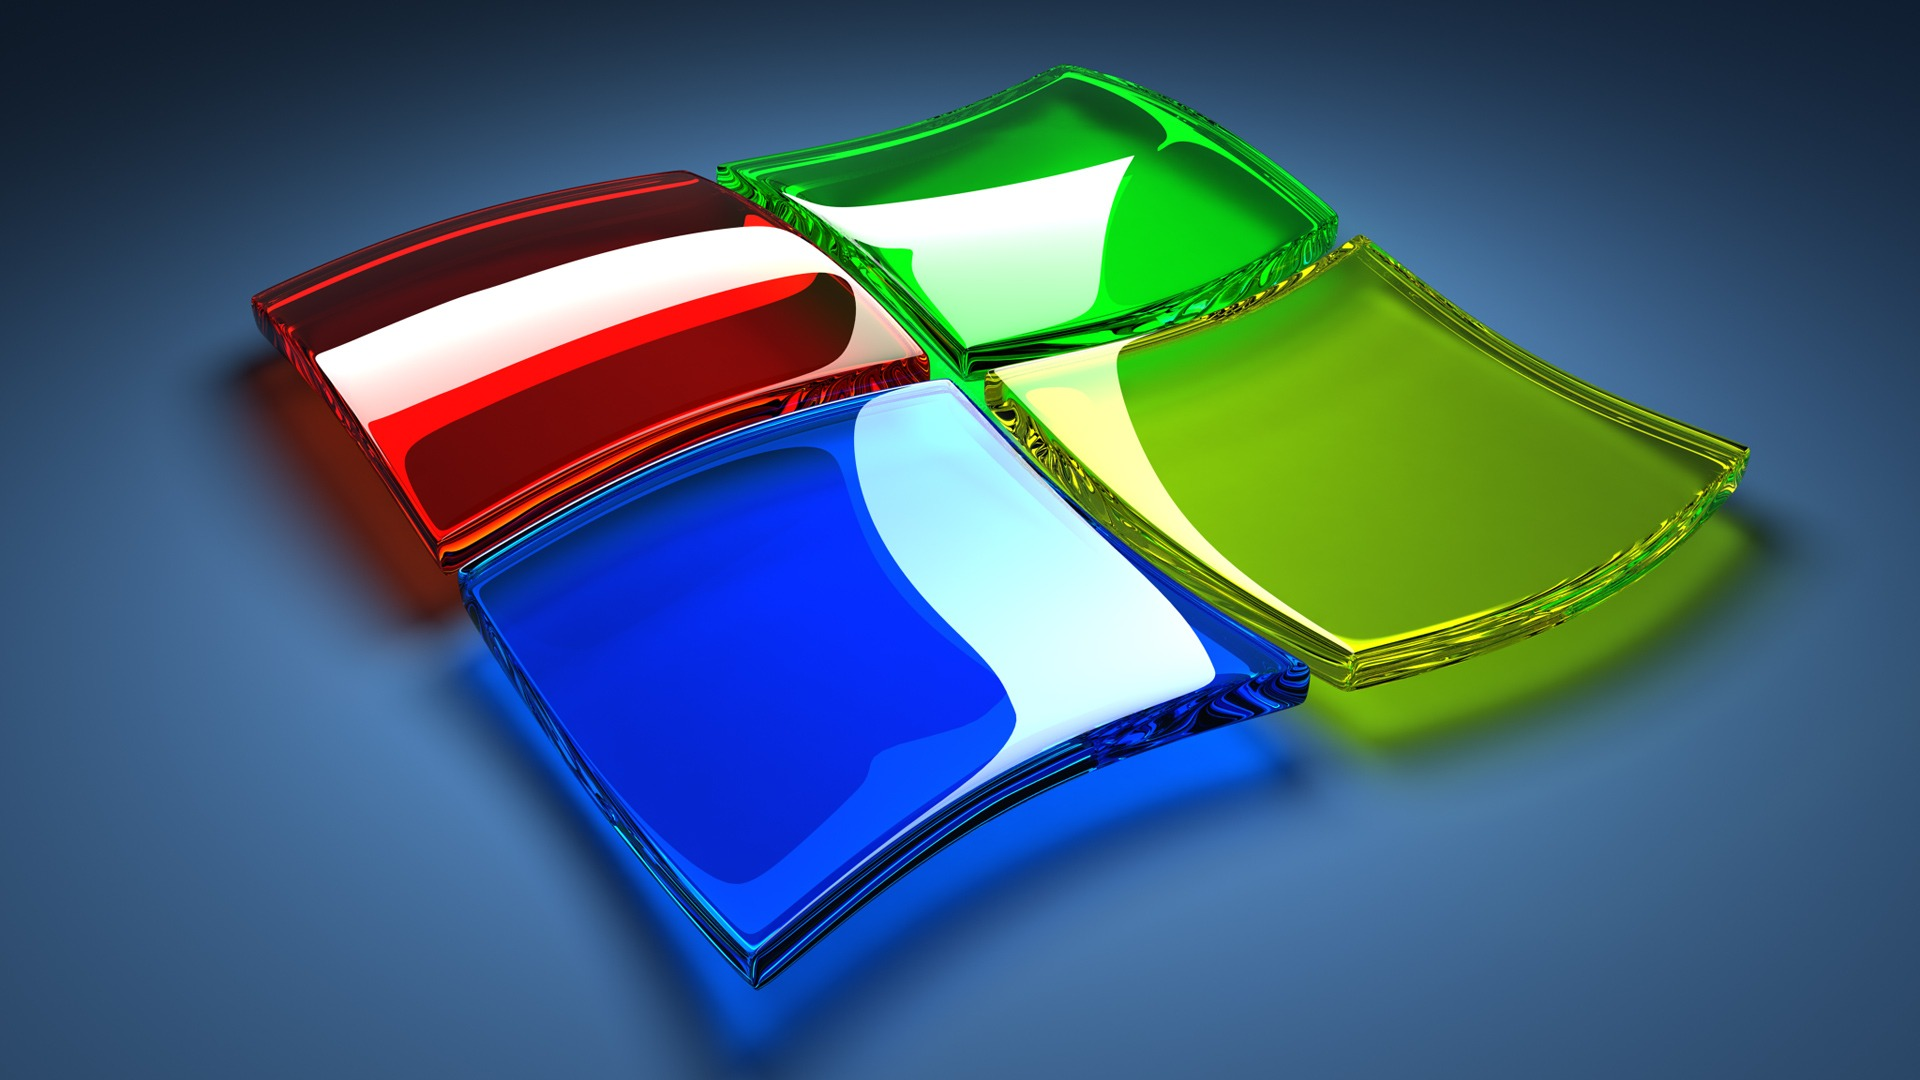 Windows Glass 3D HD Wallpaper 1080p Wallpaper WallpaperLepi 1920x1080